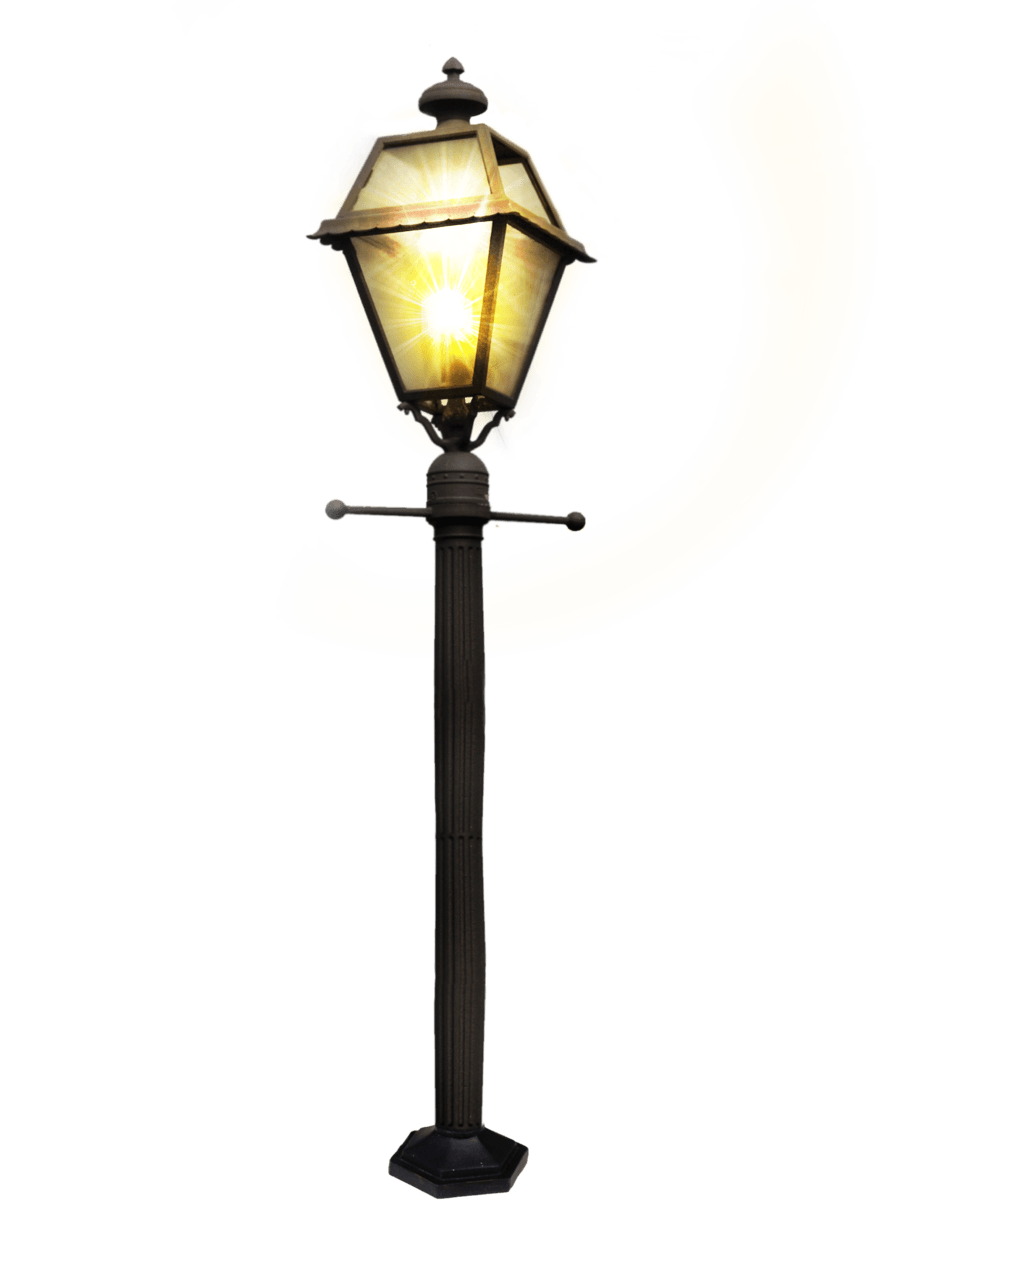 Png street lamp. Transparent stickpng objects